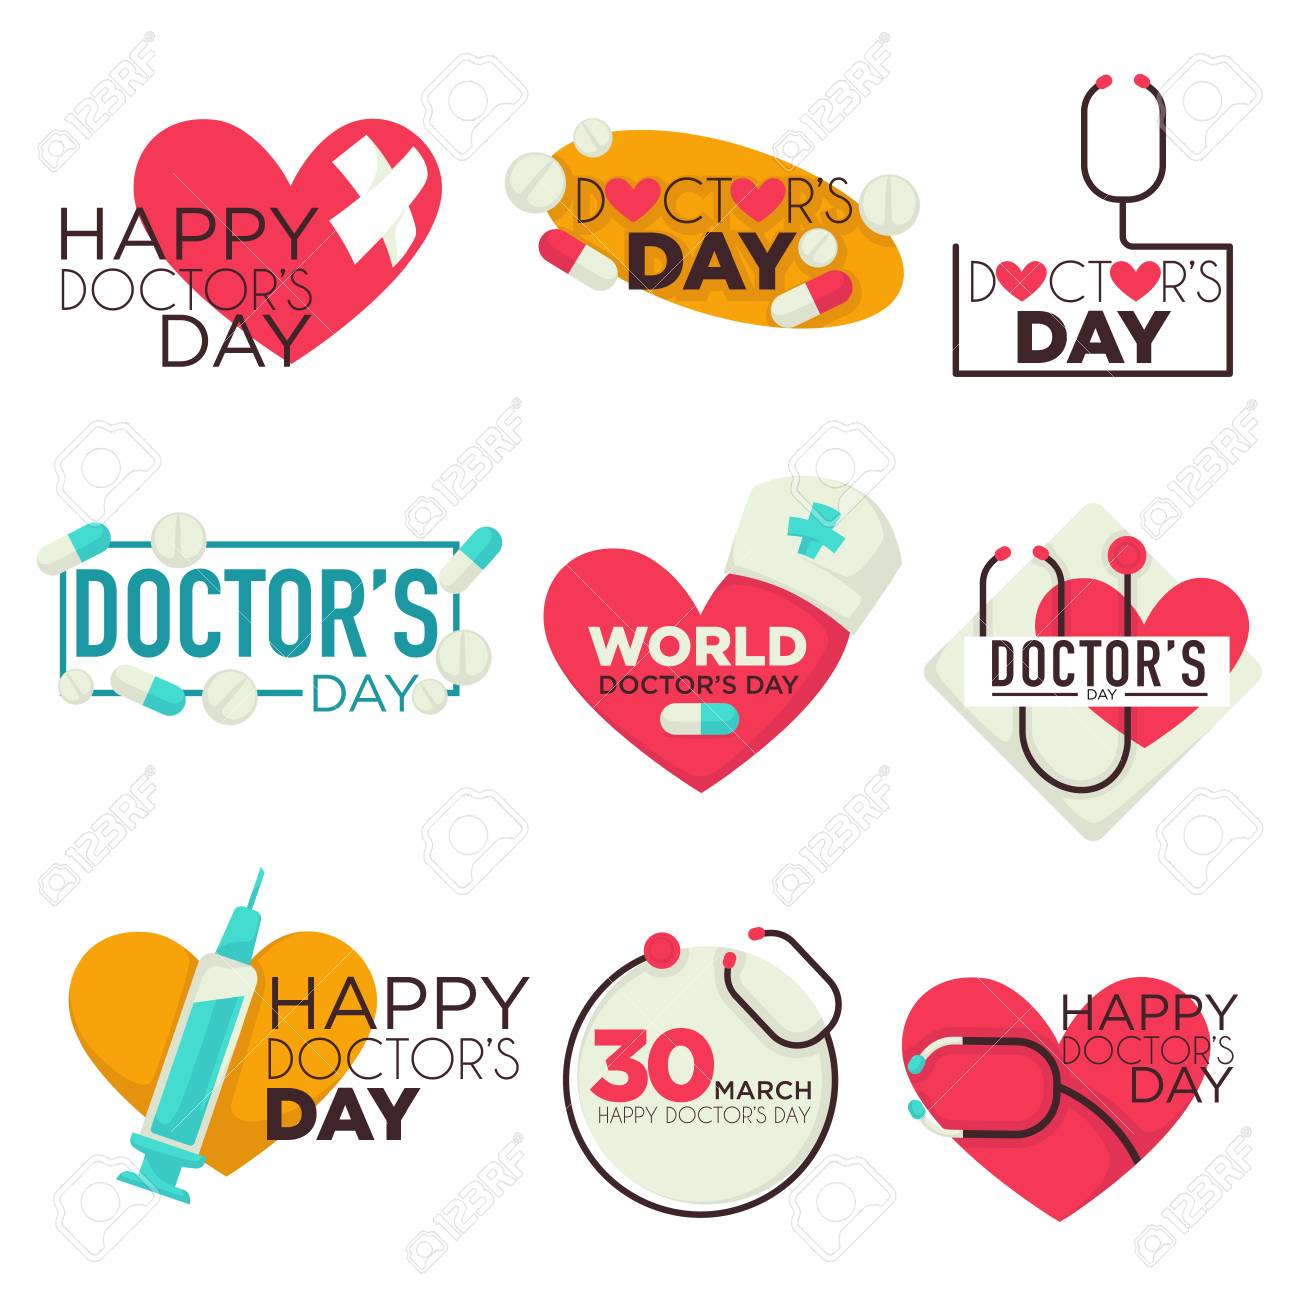 Doctors day isolated icons medicine pills and syringe - 117444851